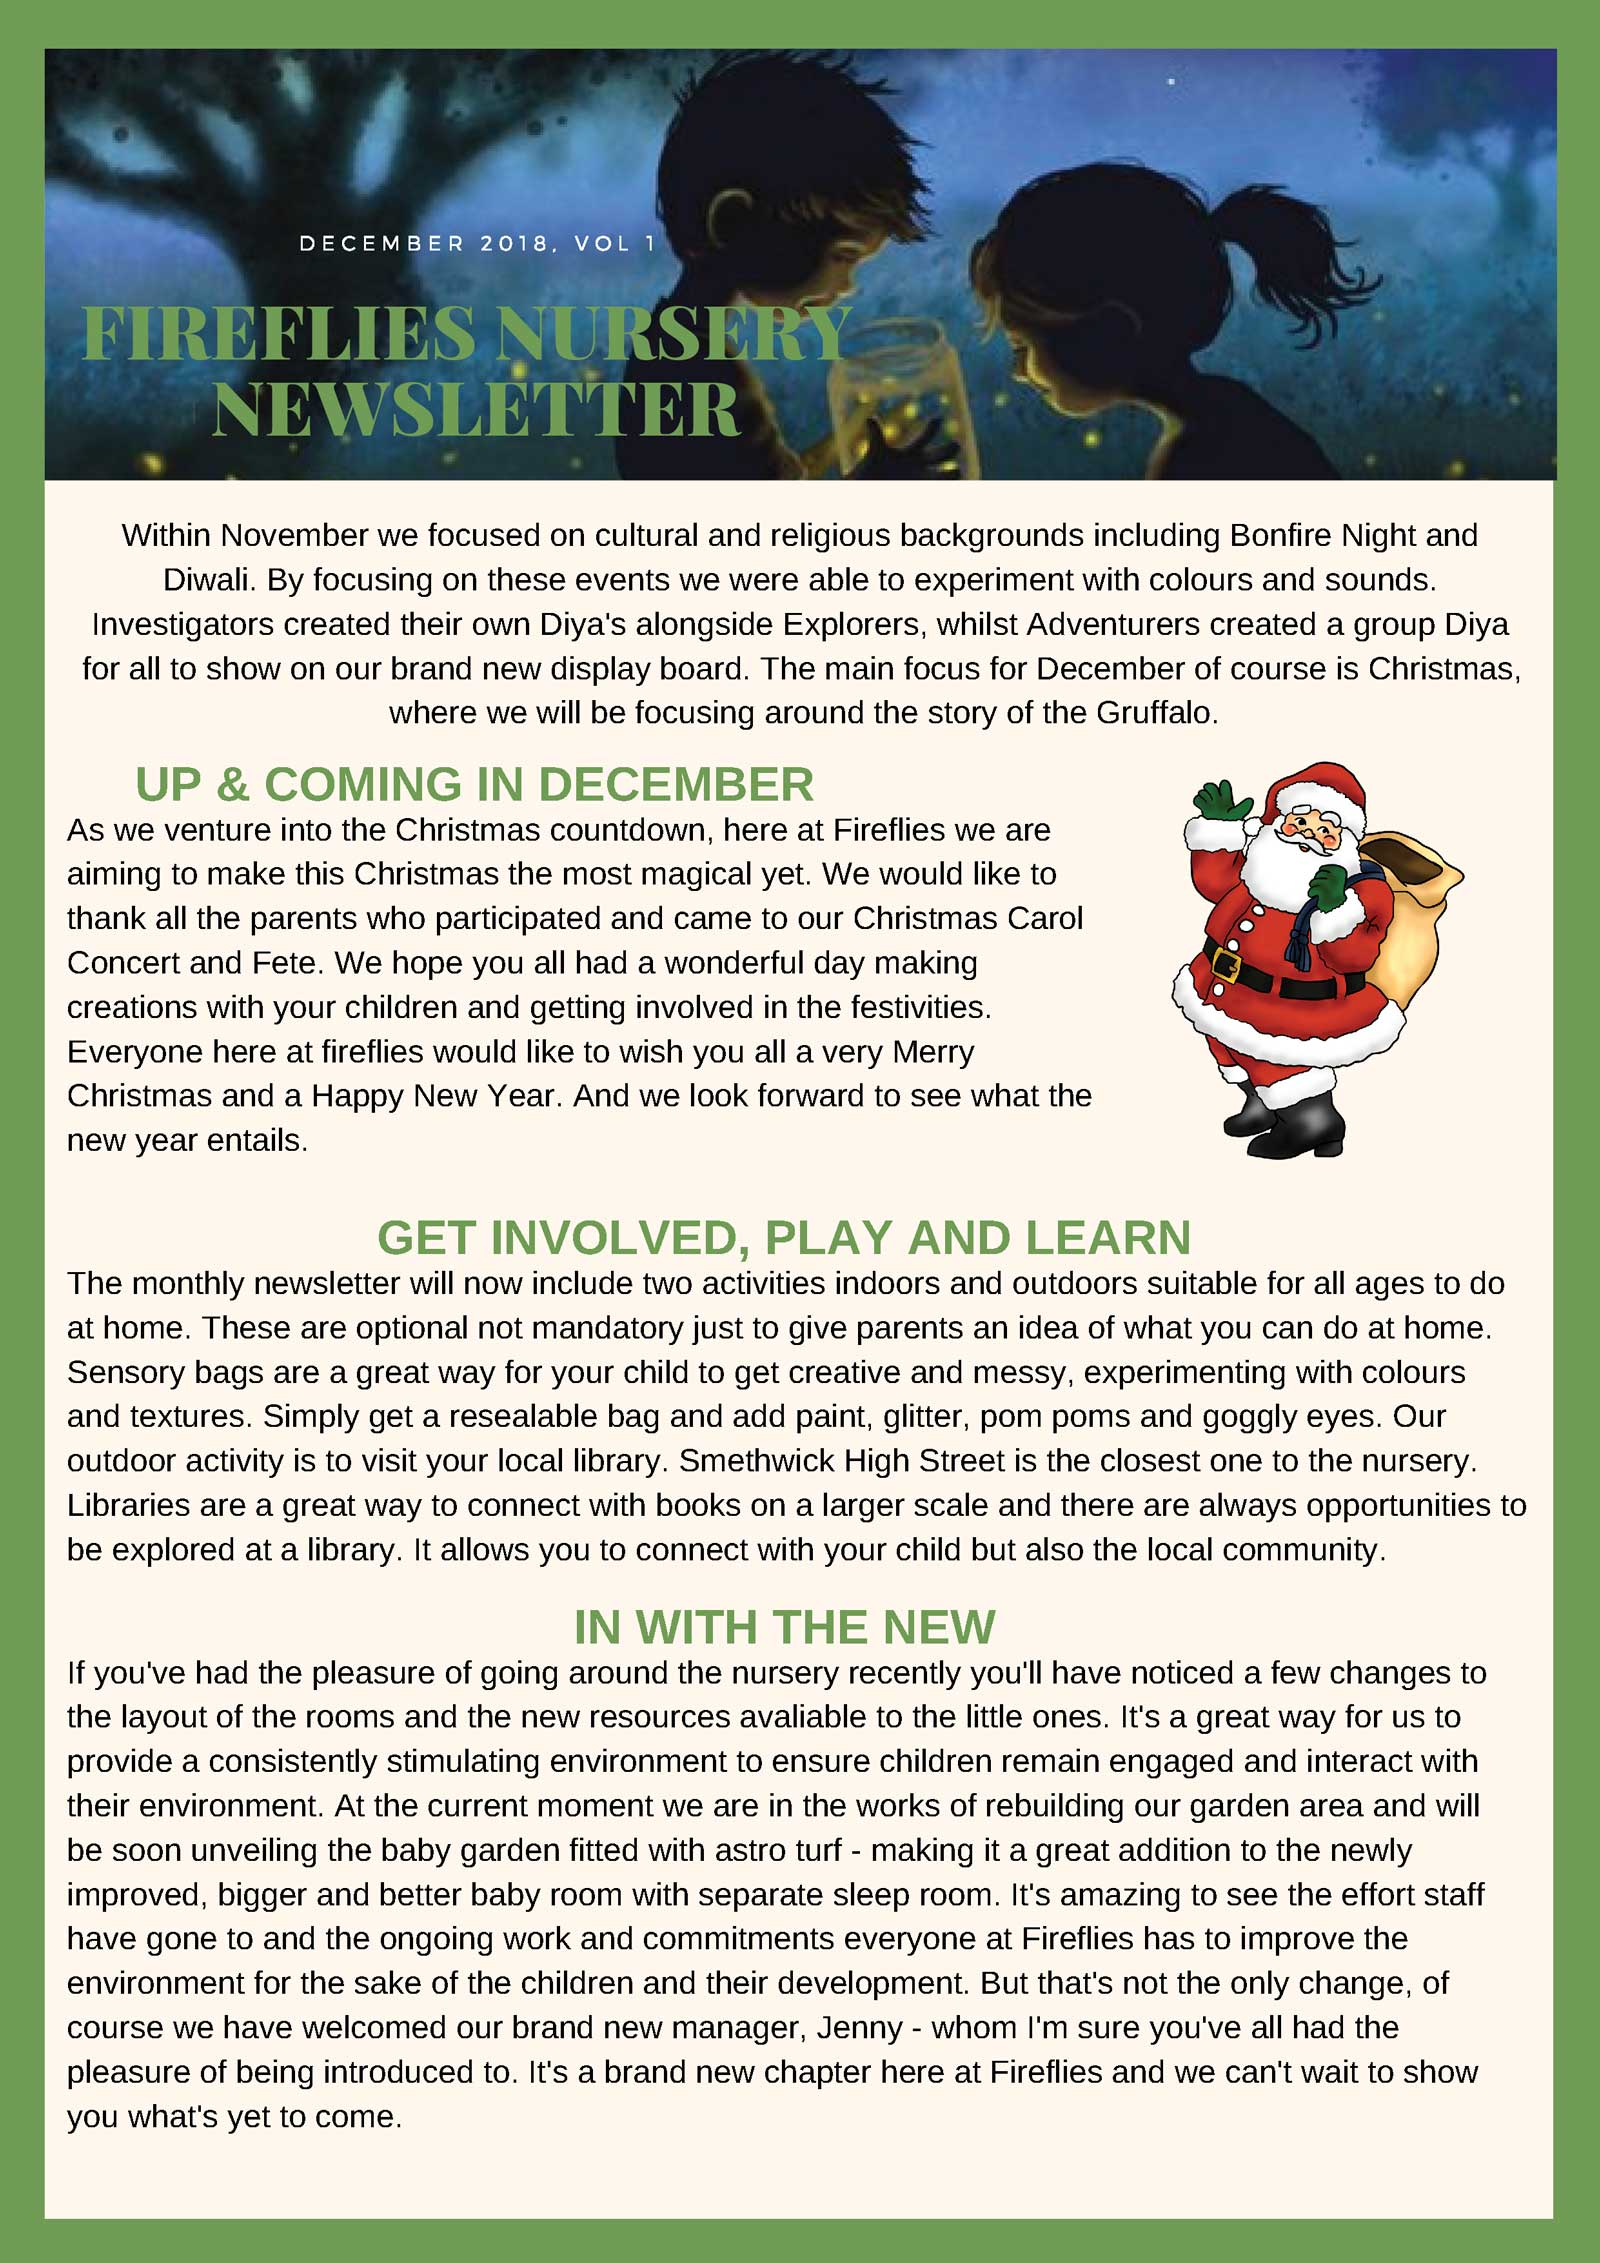 Fireflies-Nursery-Newsletter-Dec-18-1